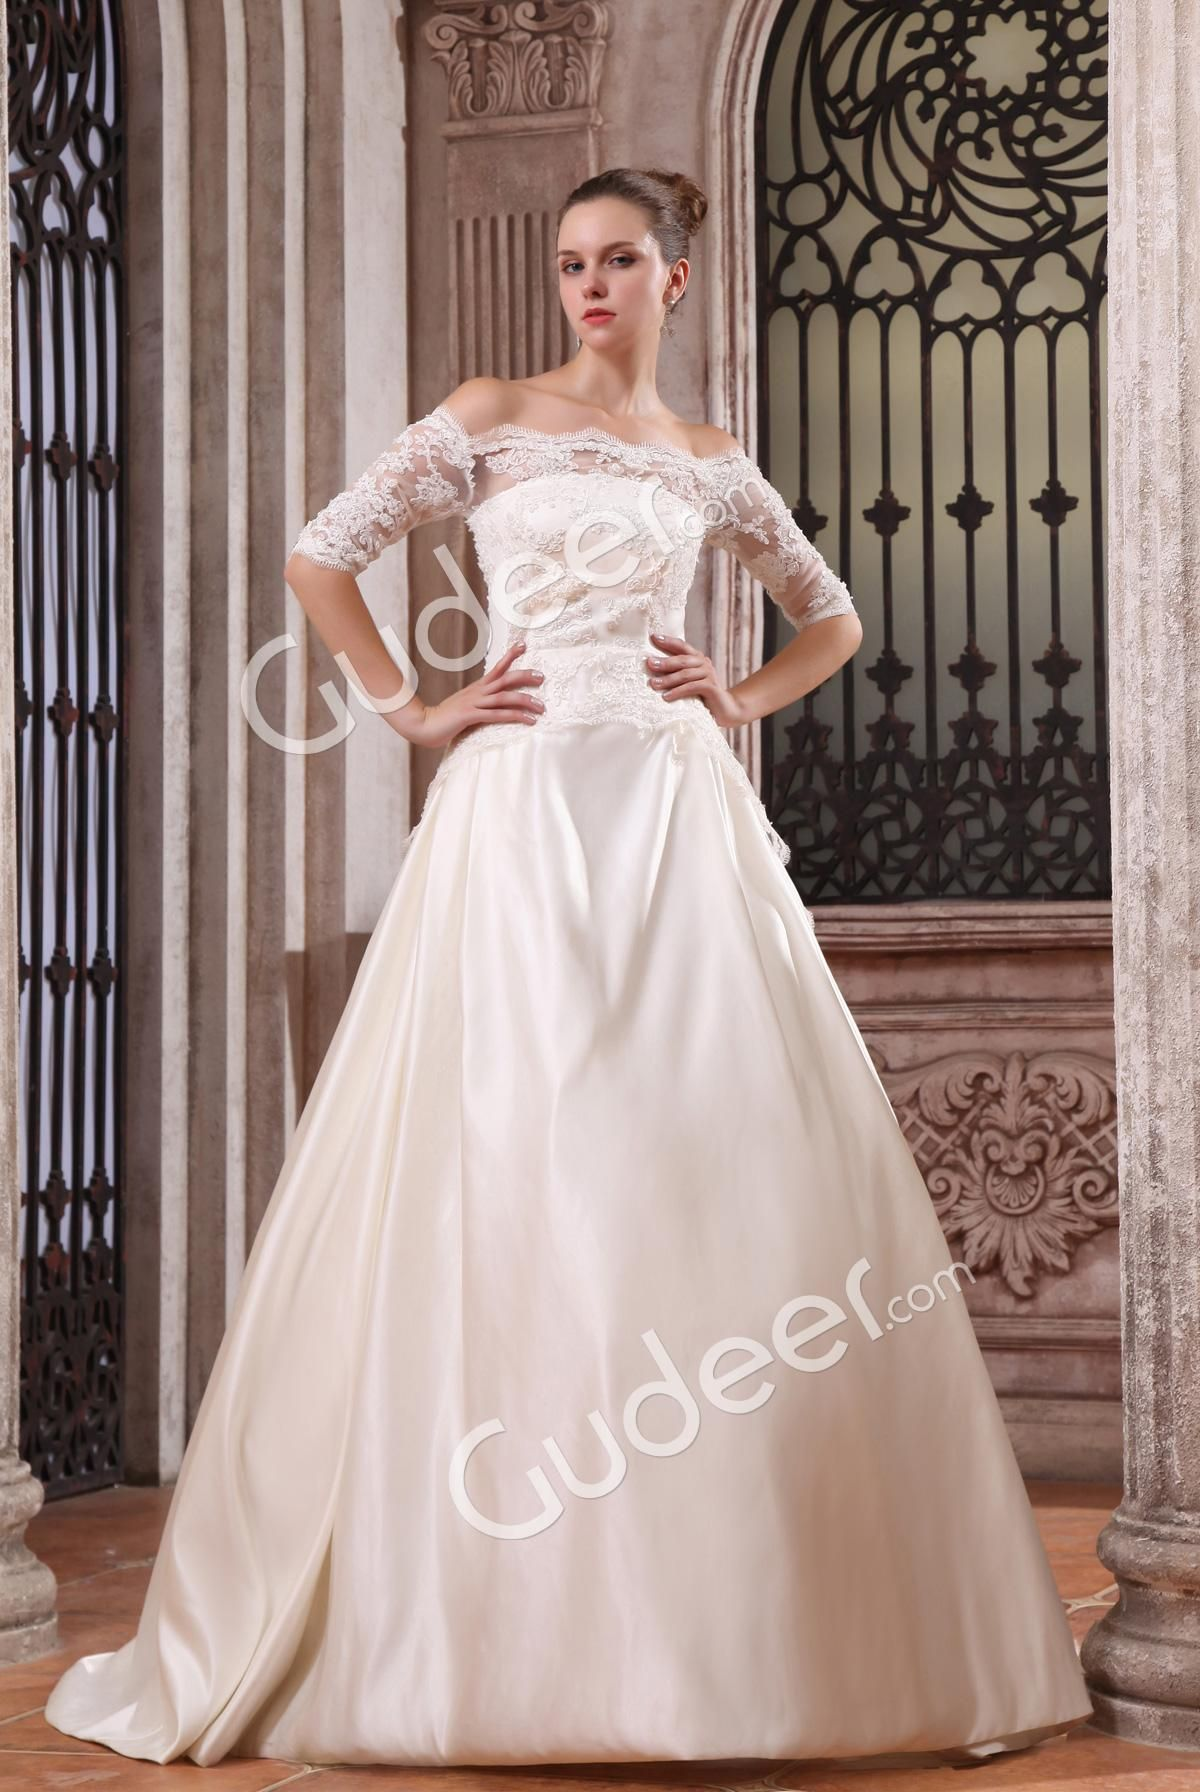 Strapless ball gown wedding dresses  strapless ball gown luxury wedding dress with offtheshoulder lace